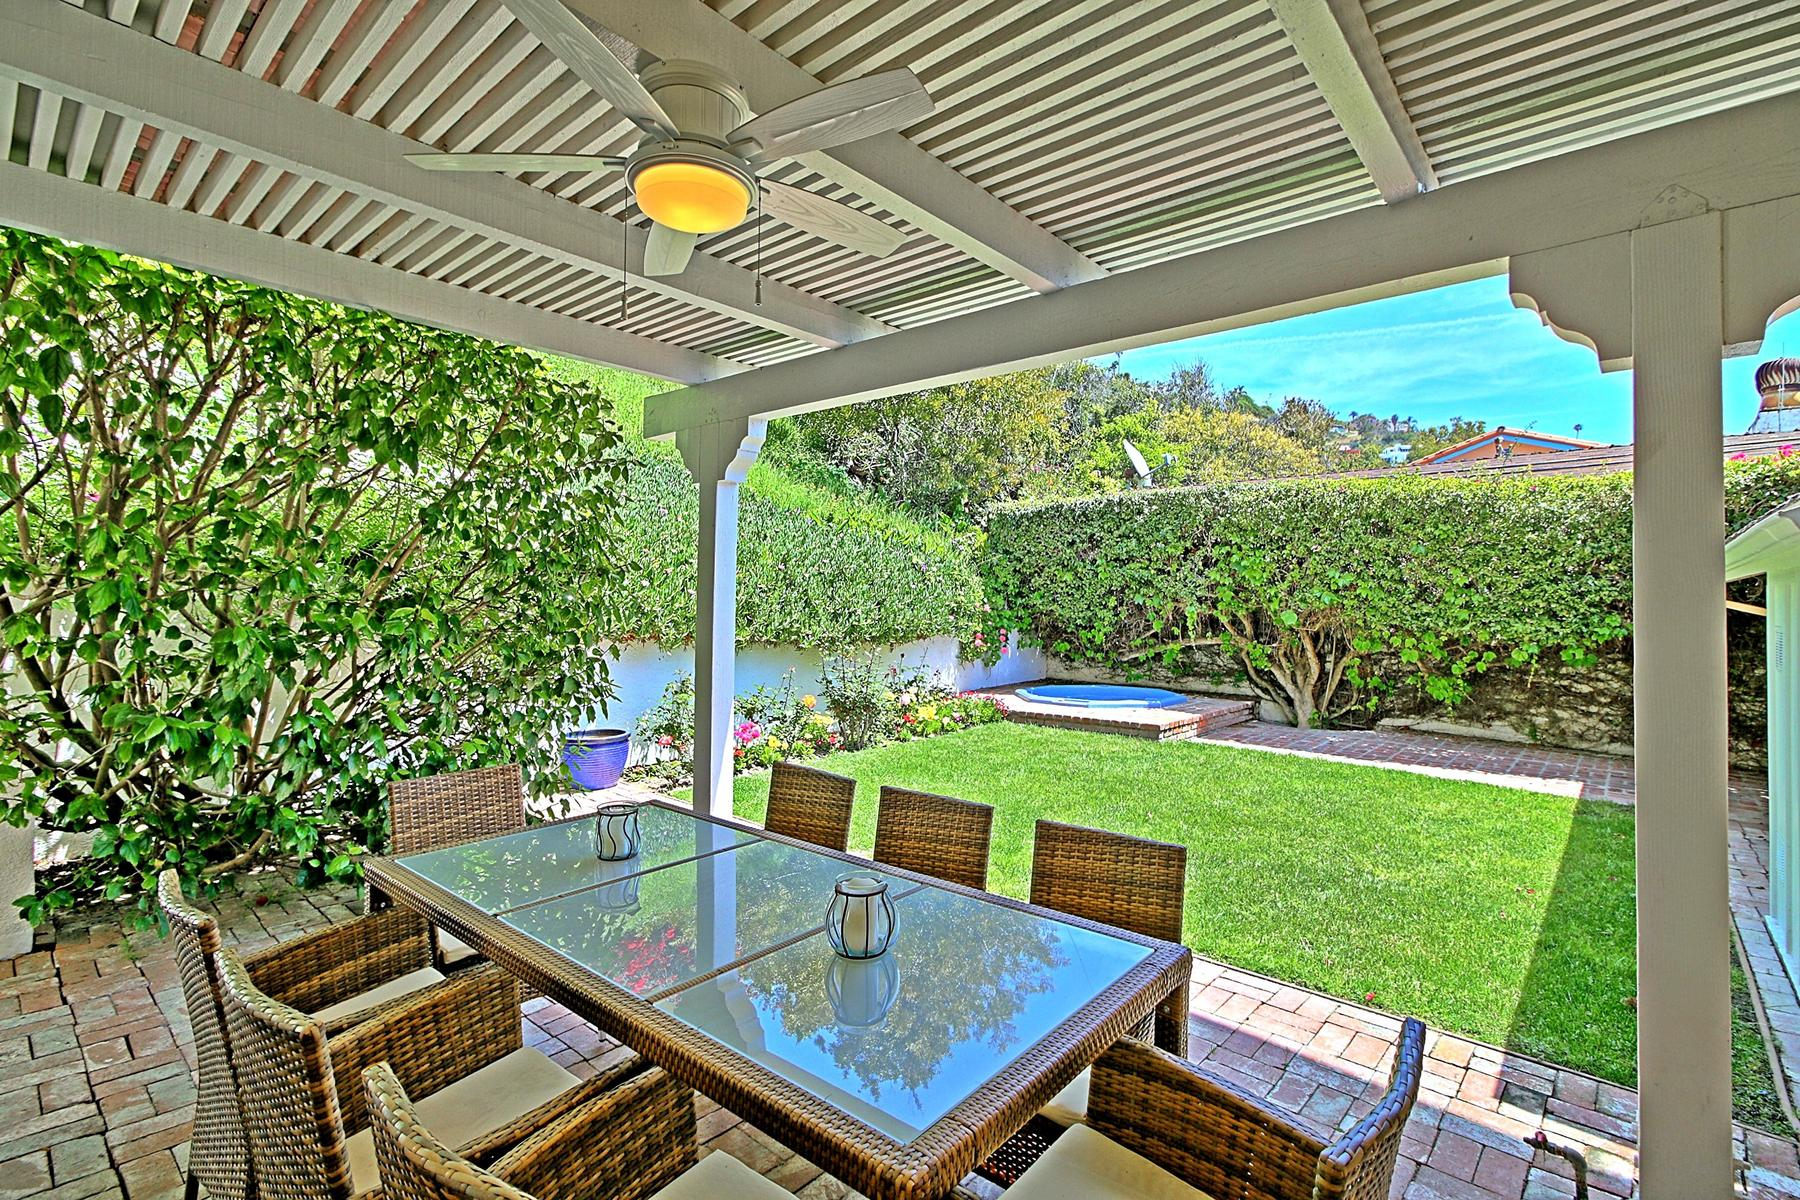 Additional photo for property listing at La Costa Beach Ocean View Home in Malibu 21701 Pacific Coast Highway Malibu, California 90265 United States